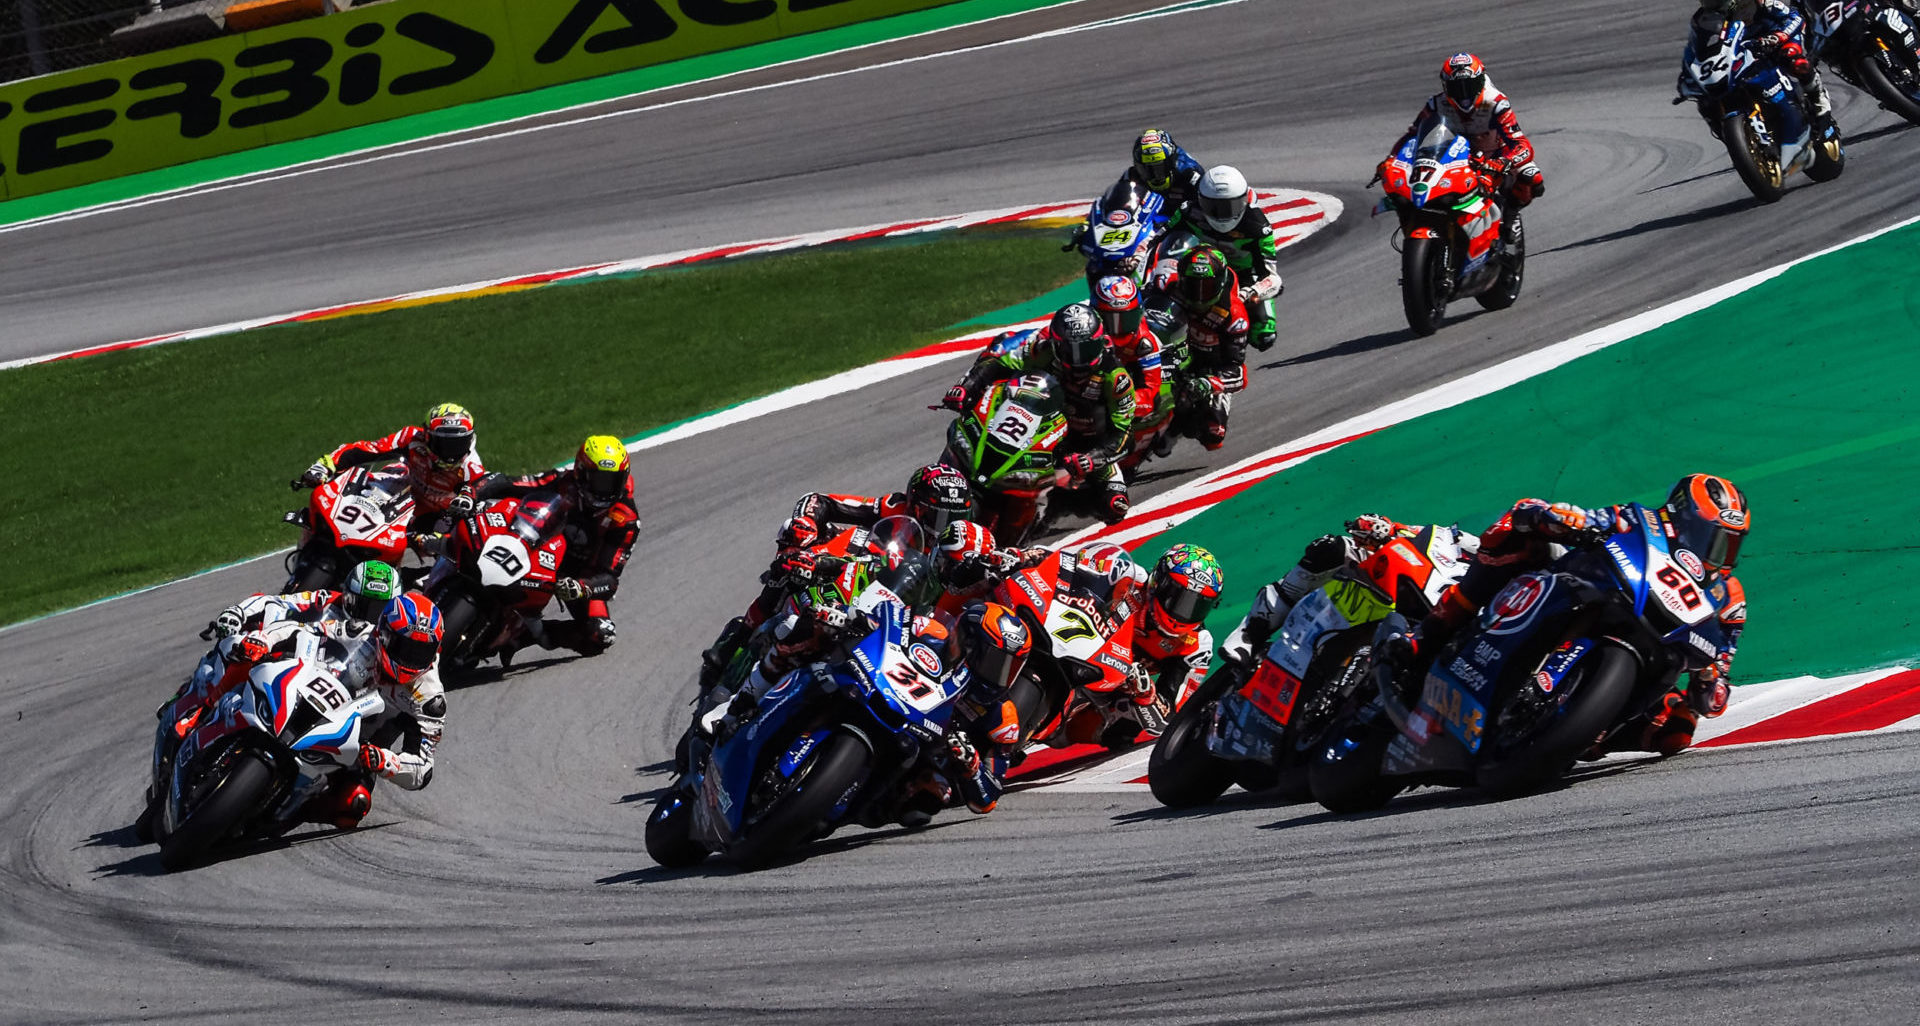 The start of World Superbike Race Two at Catalunya with Michael van der Mark (60) leading Michael Rinaldi, Garrett Gerloff (31), Chaz Davies (7), Jonathan Rea, Scott Redding, and the rest of the field. Photo courtesy Dorna.